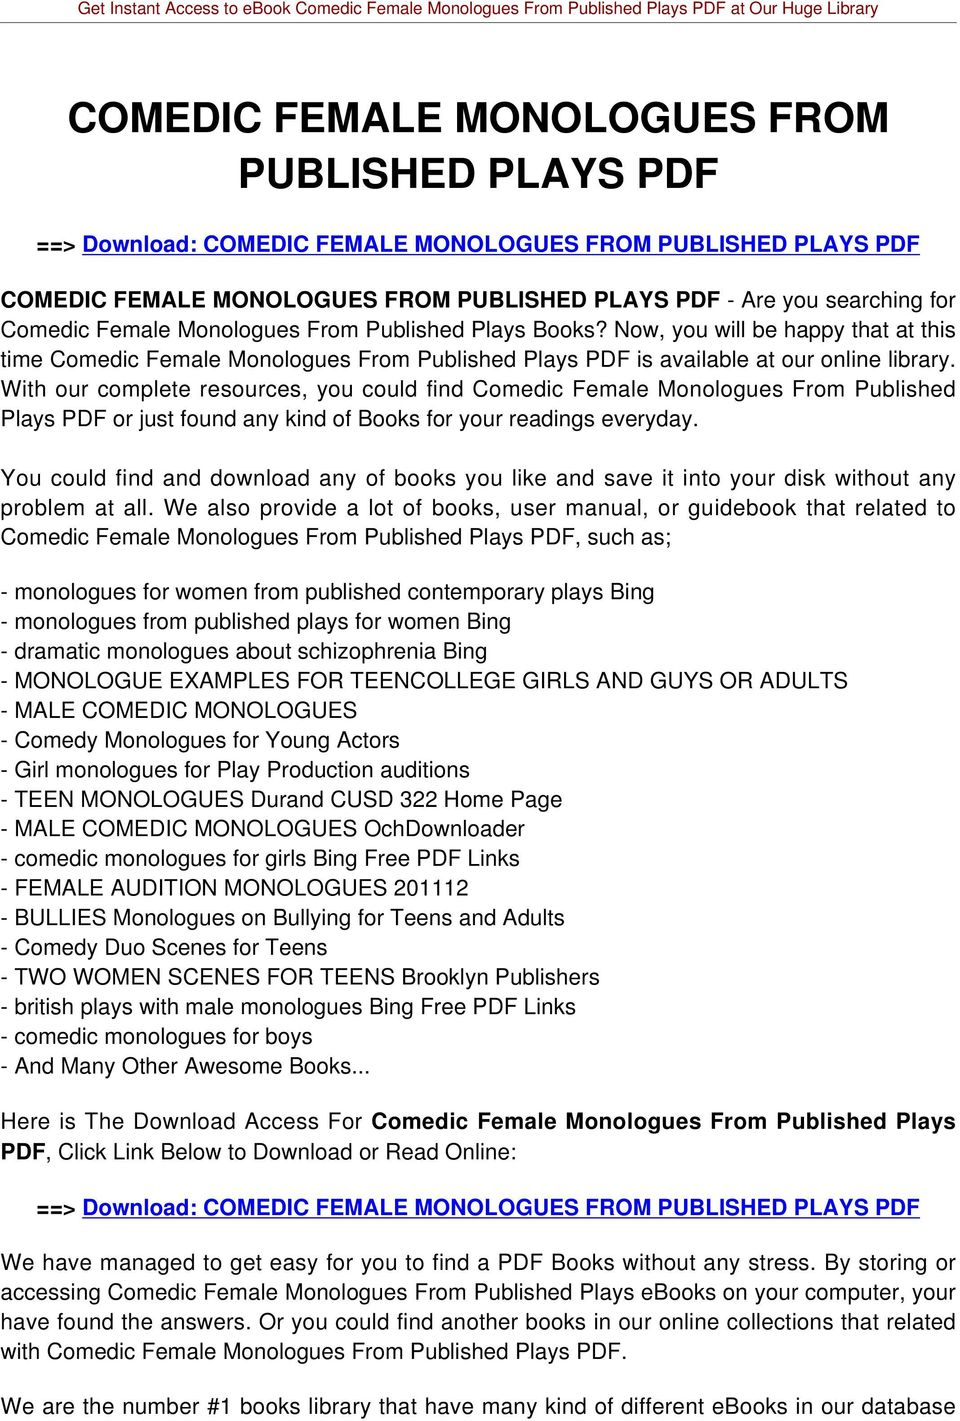 With our complete resources, you could find Comedic Female Monologues From Published Plays PDF or just found any kind of Books for your readings everyday.